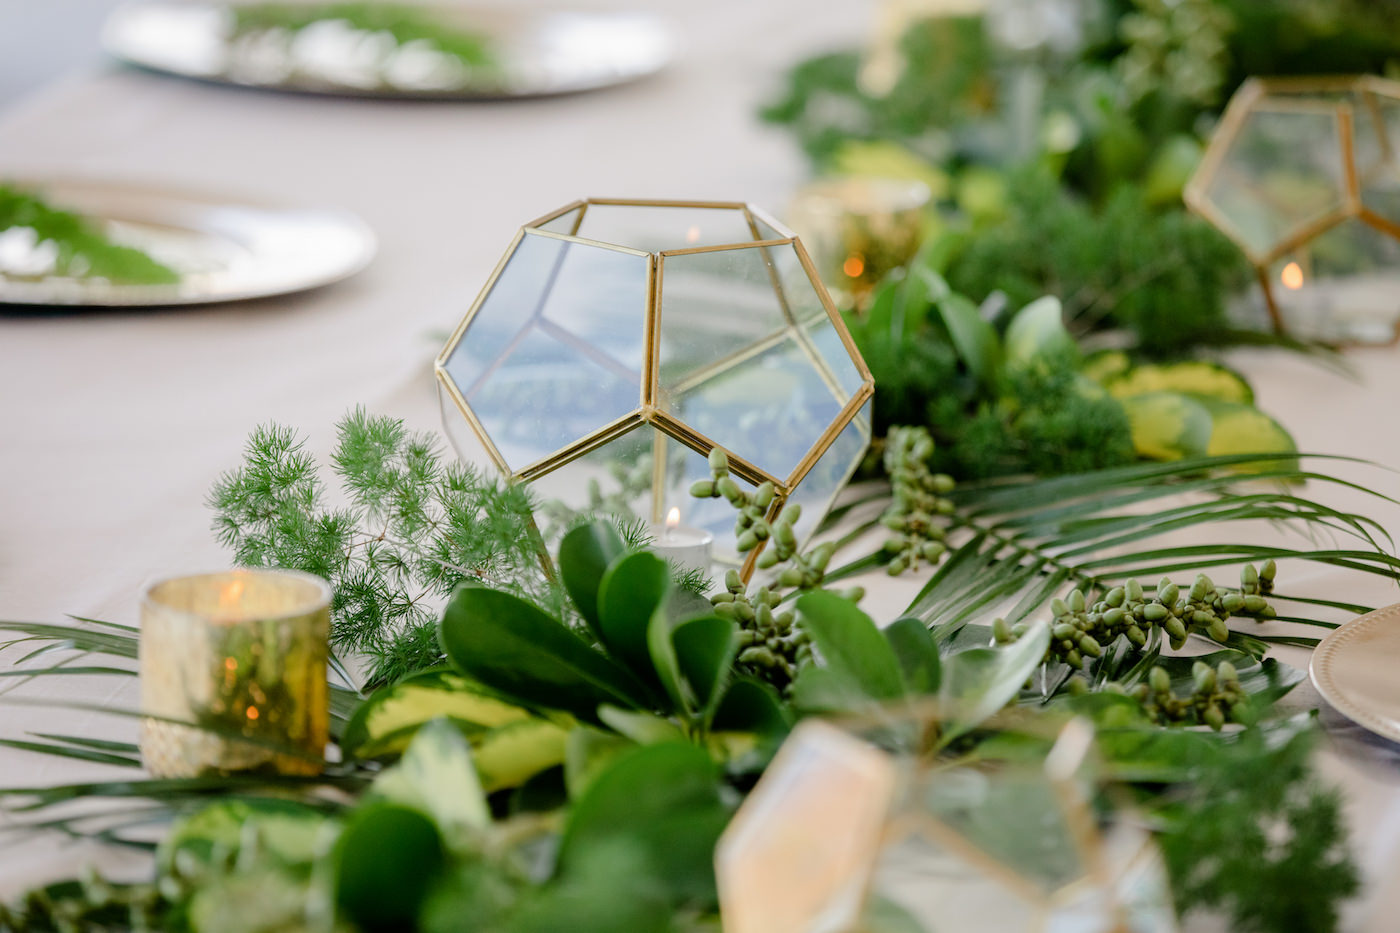 Clearwater Beach Wedding Venue Hilton Clearwater Beach   Modern Tropical Beach Outdoor Wedding Reception Terrace Feasting Table Centerpiece of Tropical Palm Frond Leaf Floral Arrangement Garland and Gold Geometric Candles